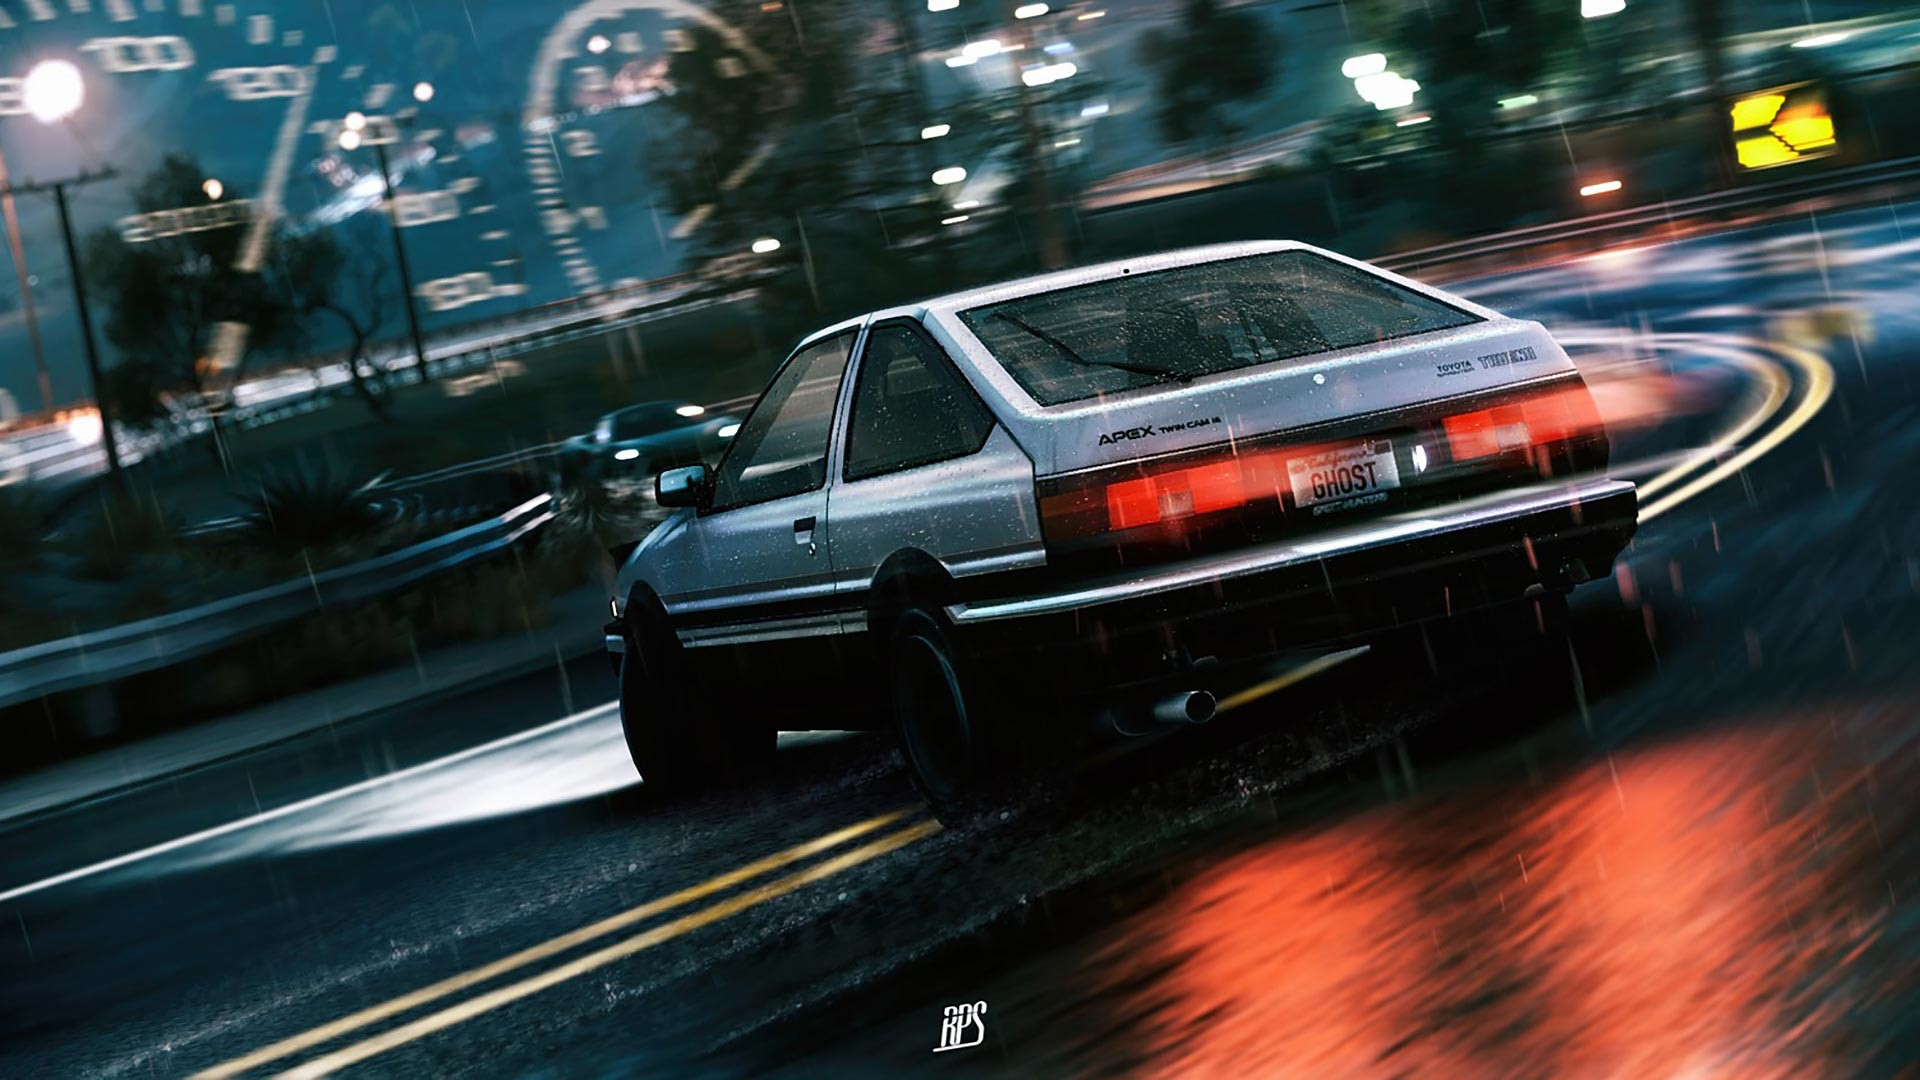 Initial D Wallpaper Hd 62 Images HD Wallpapers Download Free Images Wallpaper [1000image.com]